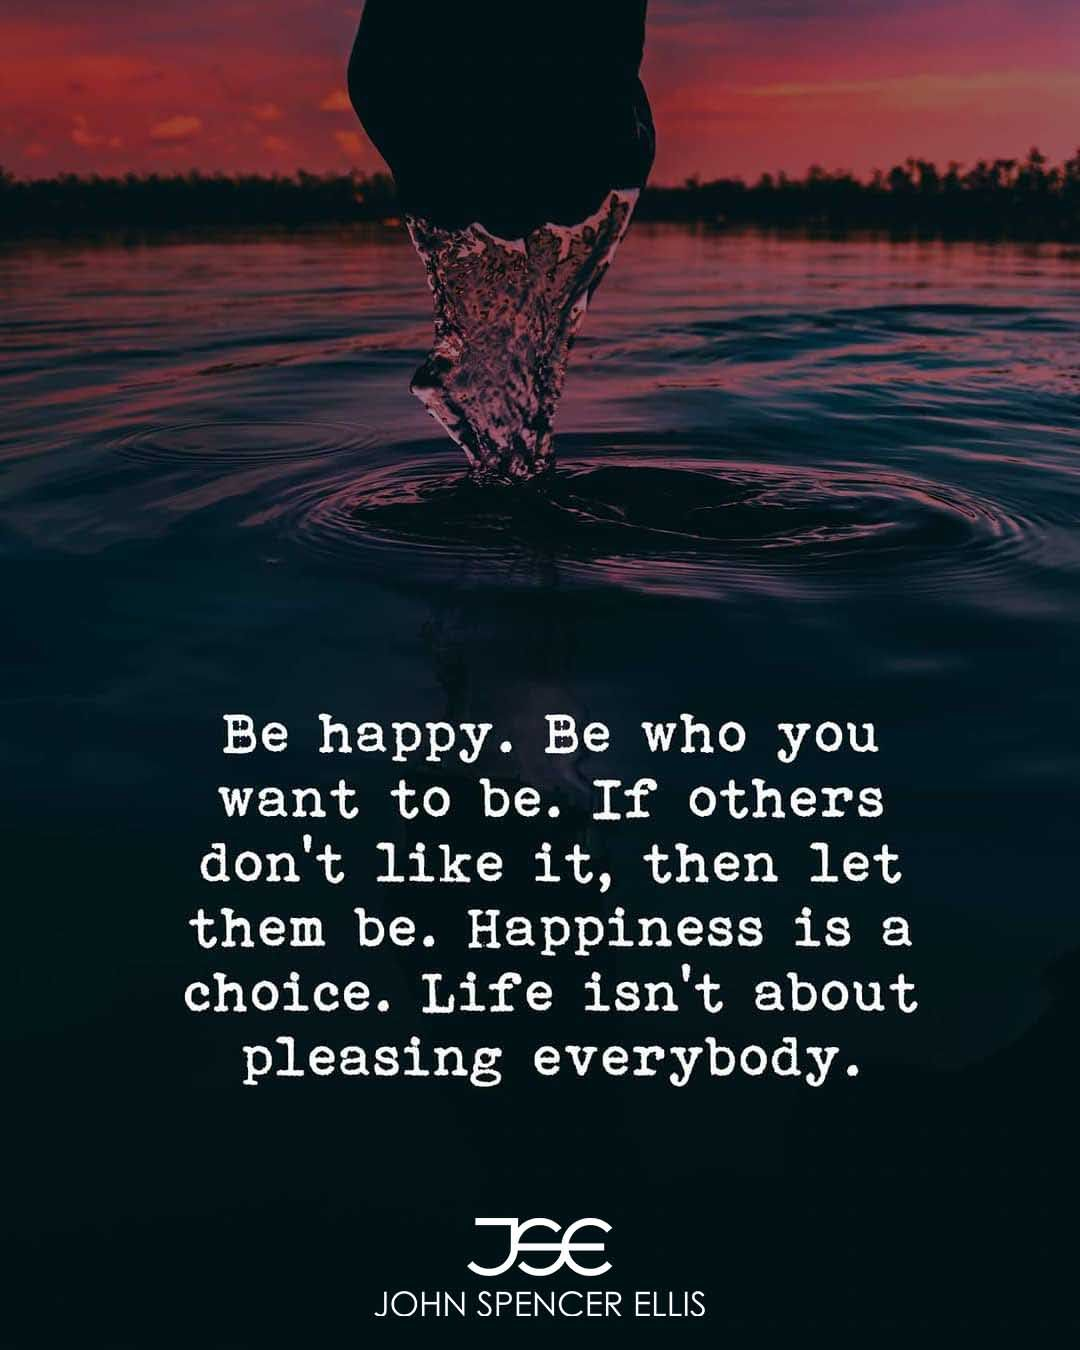 Entrepreneur Coach Happiness is a choice, Online fitness